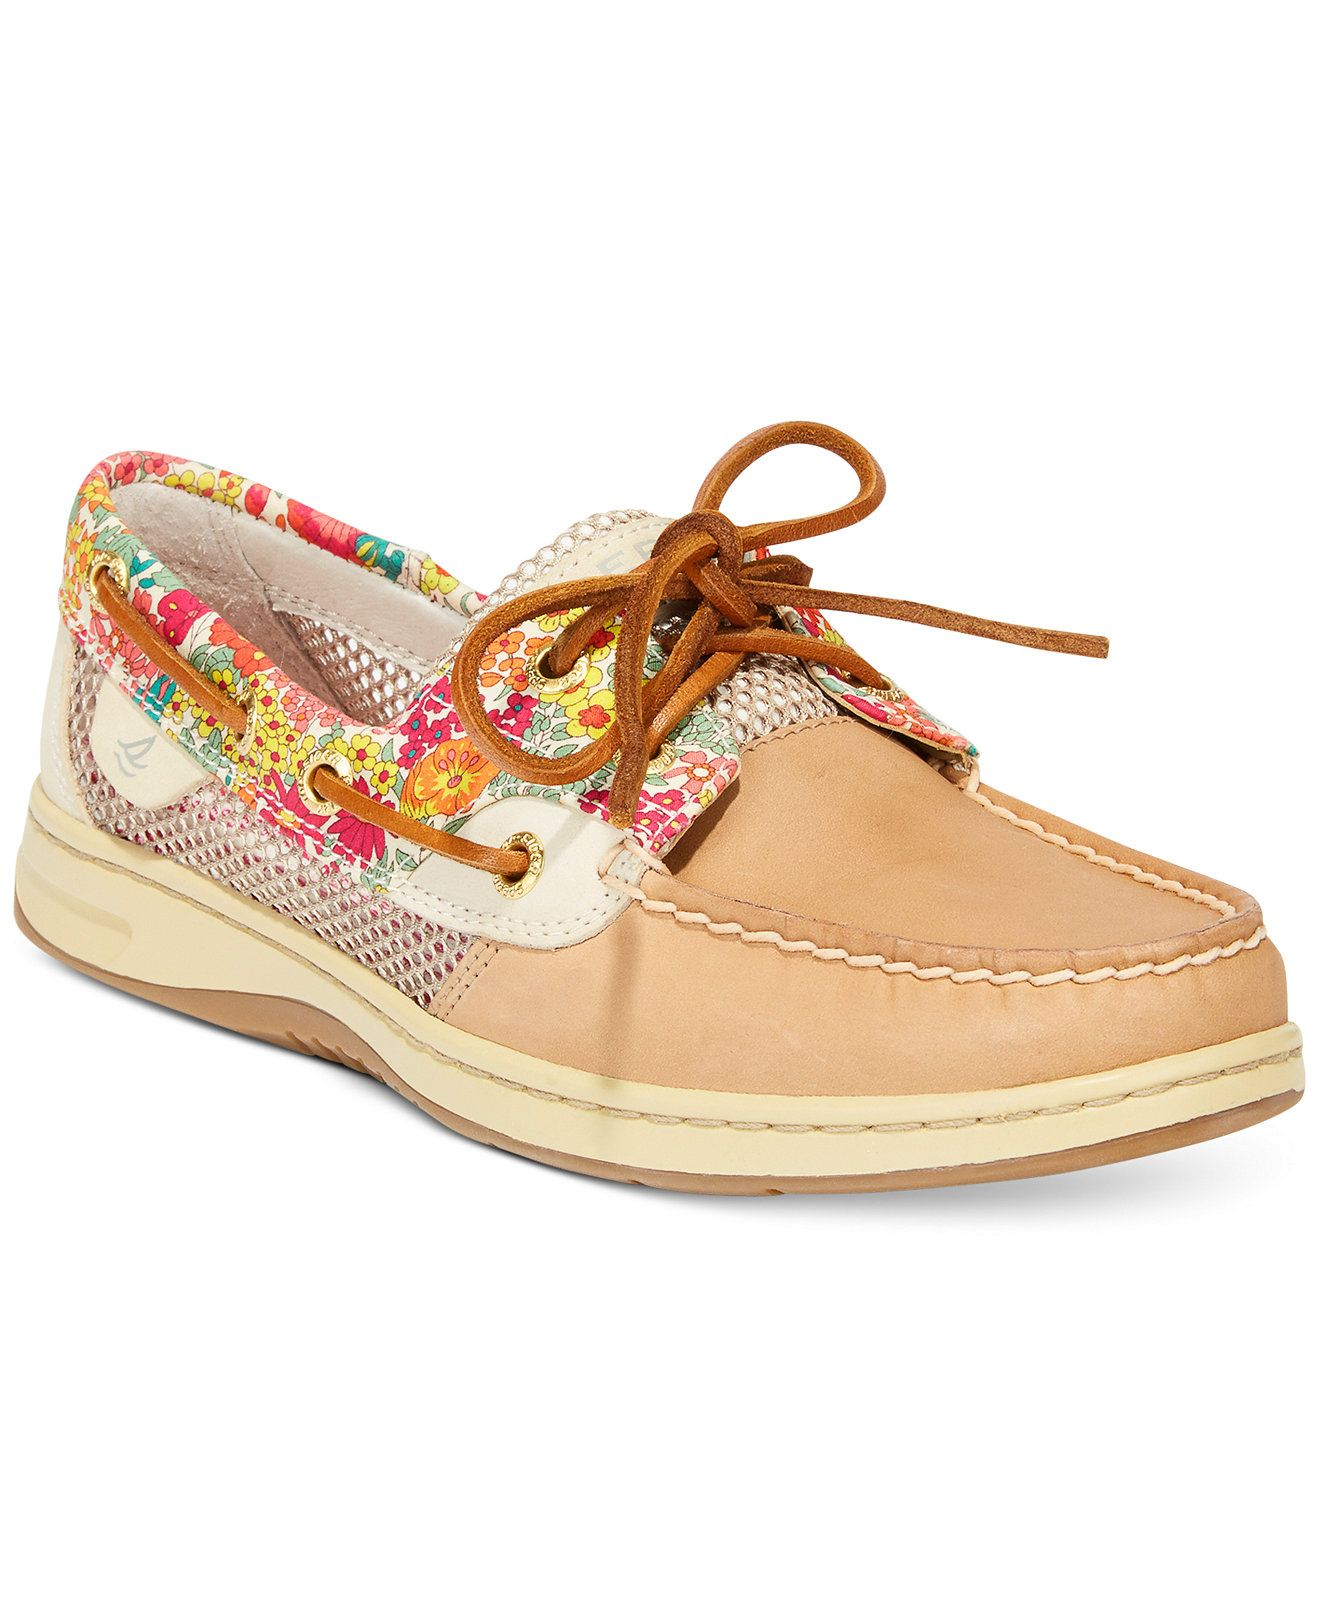 Sperry Women's Bluefish Liberty Floral Print Boat Shoes - Flats - Shoes -  Macy's